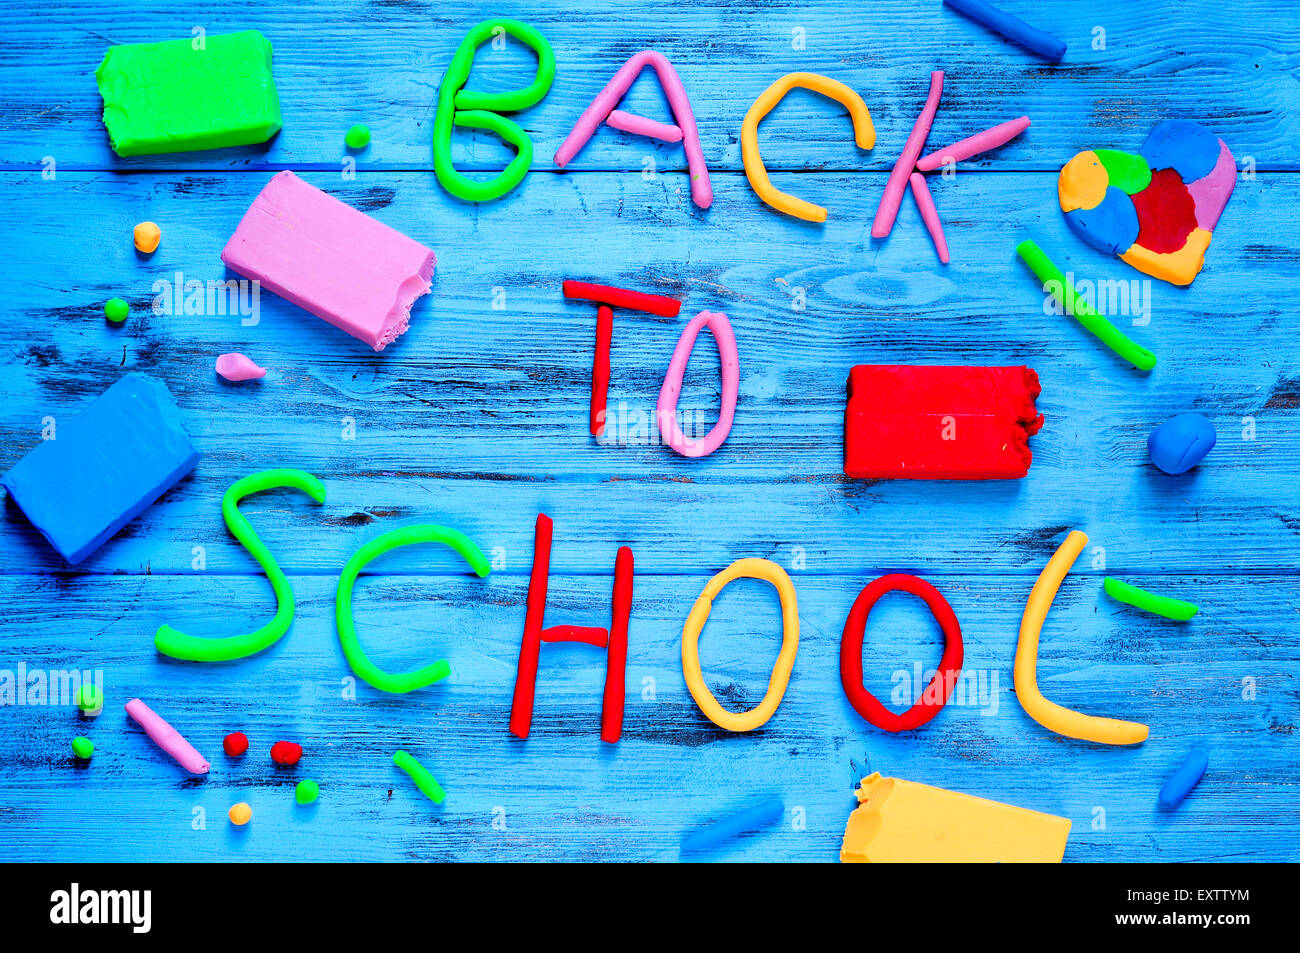 the sentence back to school written with modelling clay of different colors on a blue rustic wooden background - Stock Image